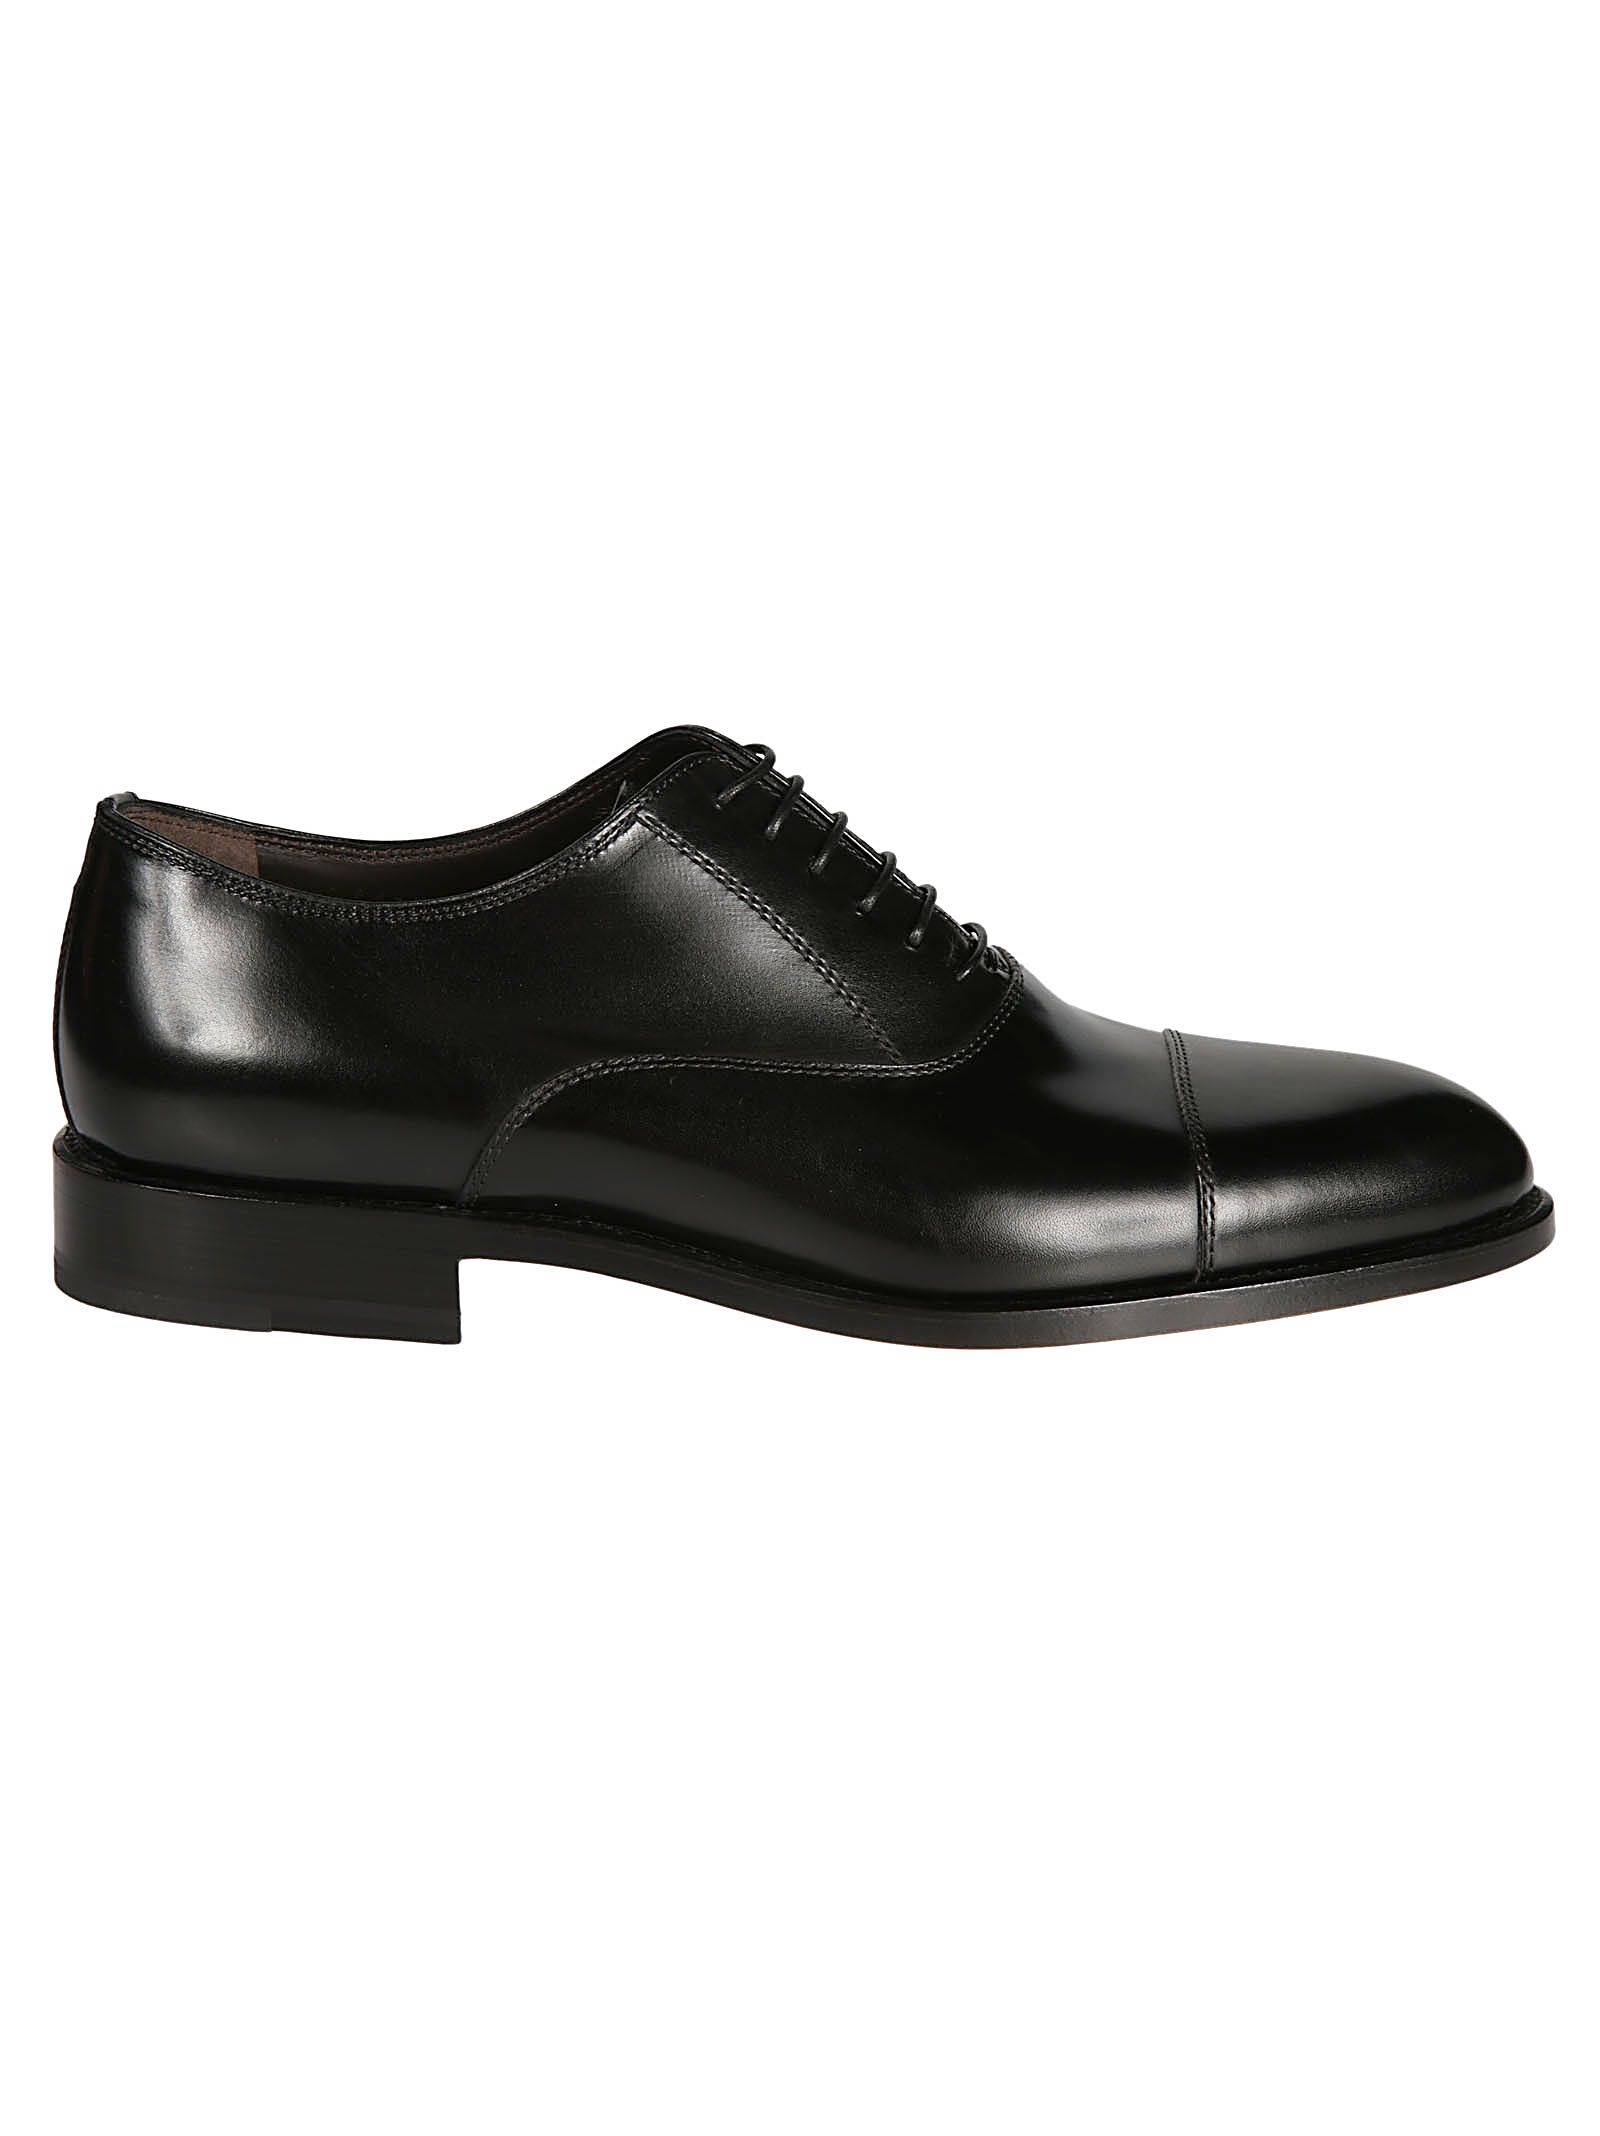 MORESCHI Dublin Black Calfskin Oxford Shoes